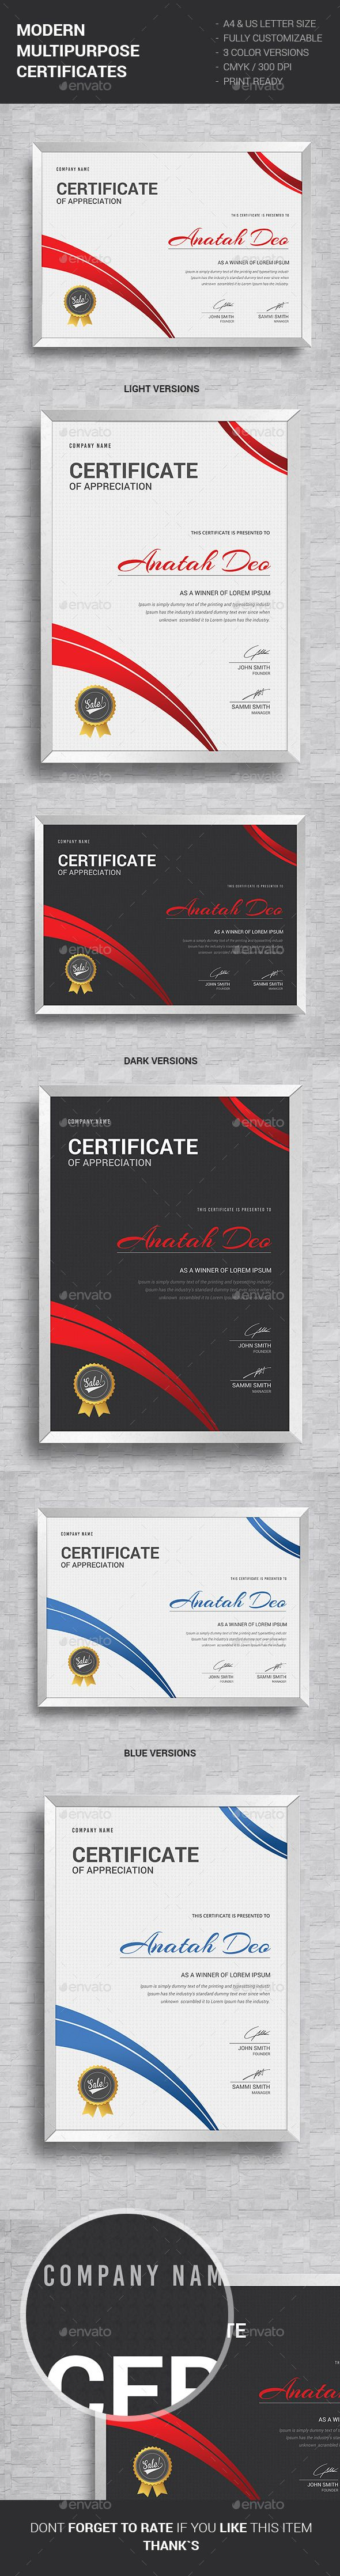 77 best Certificate images on Pinterest Certificate design